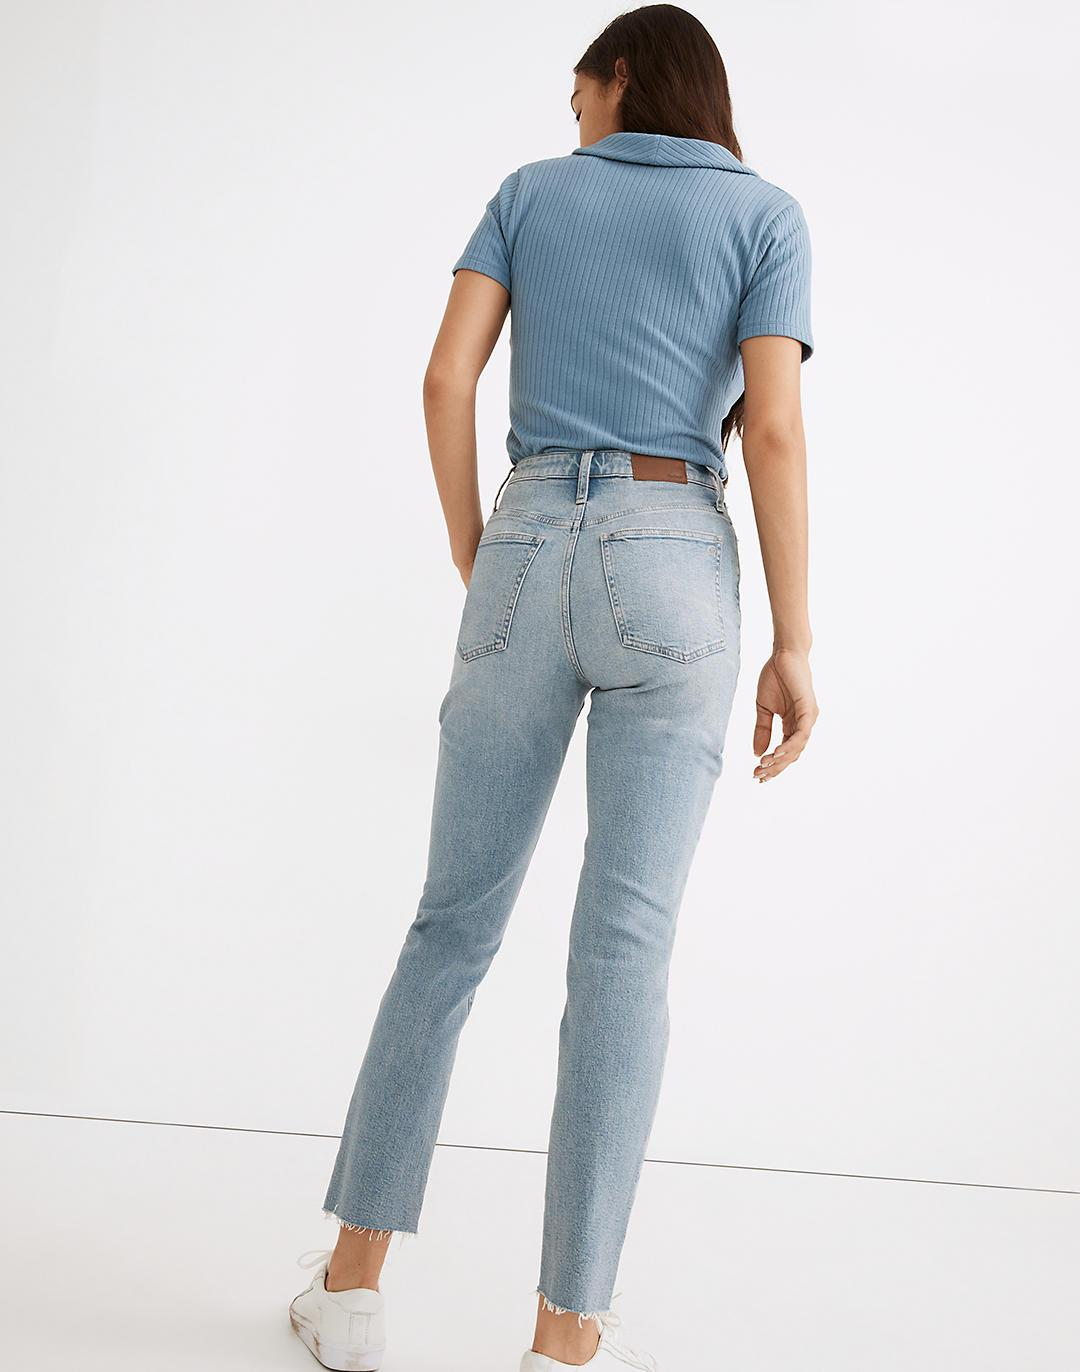 The Tall Curvy Perfect Vintage Jean in Ellicott Wash